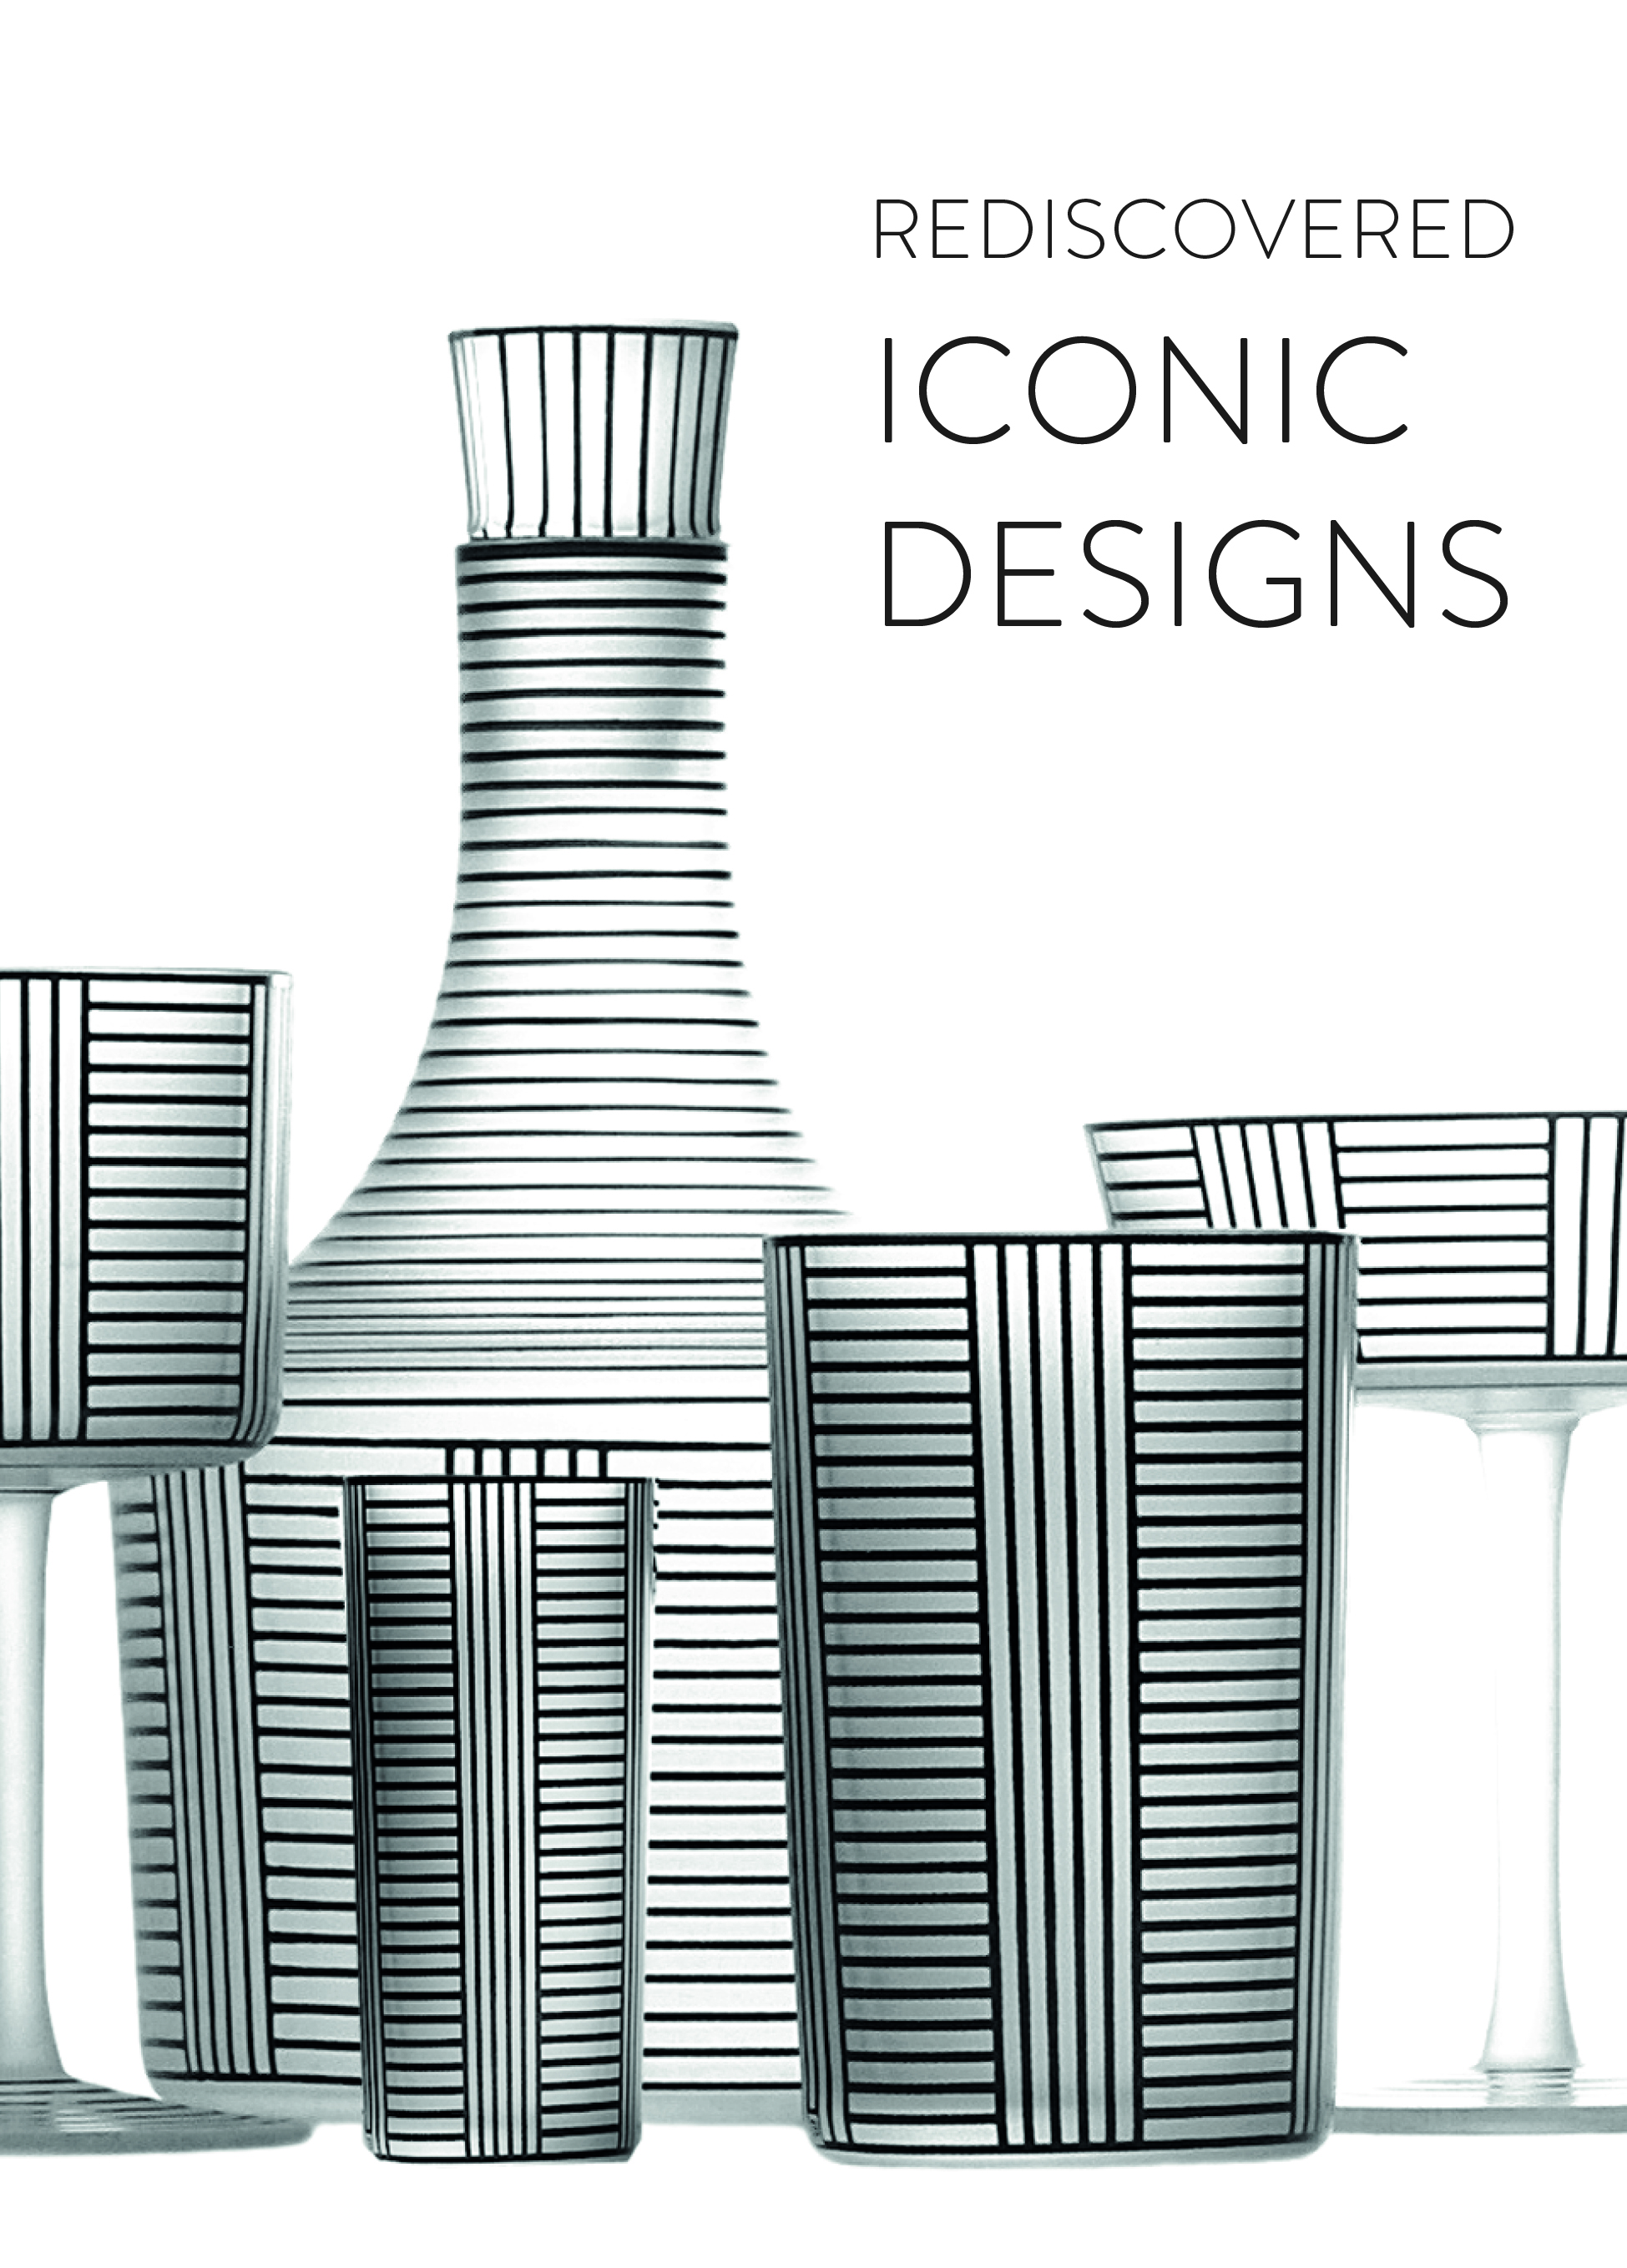 Forgotten iconic designs front cover.jpg